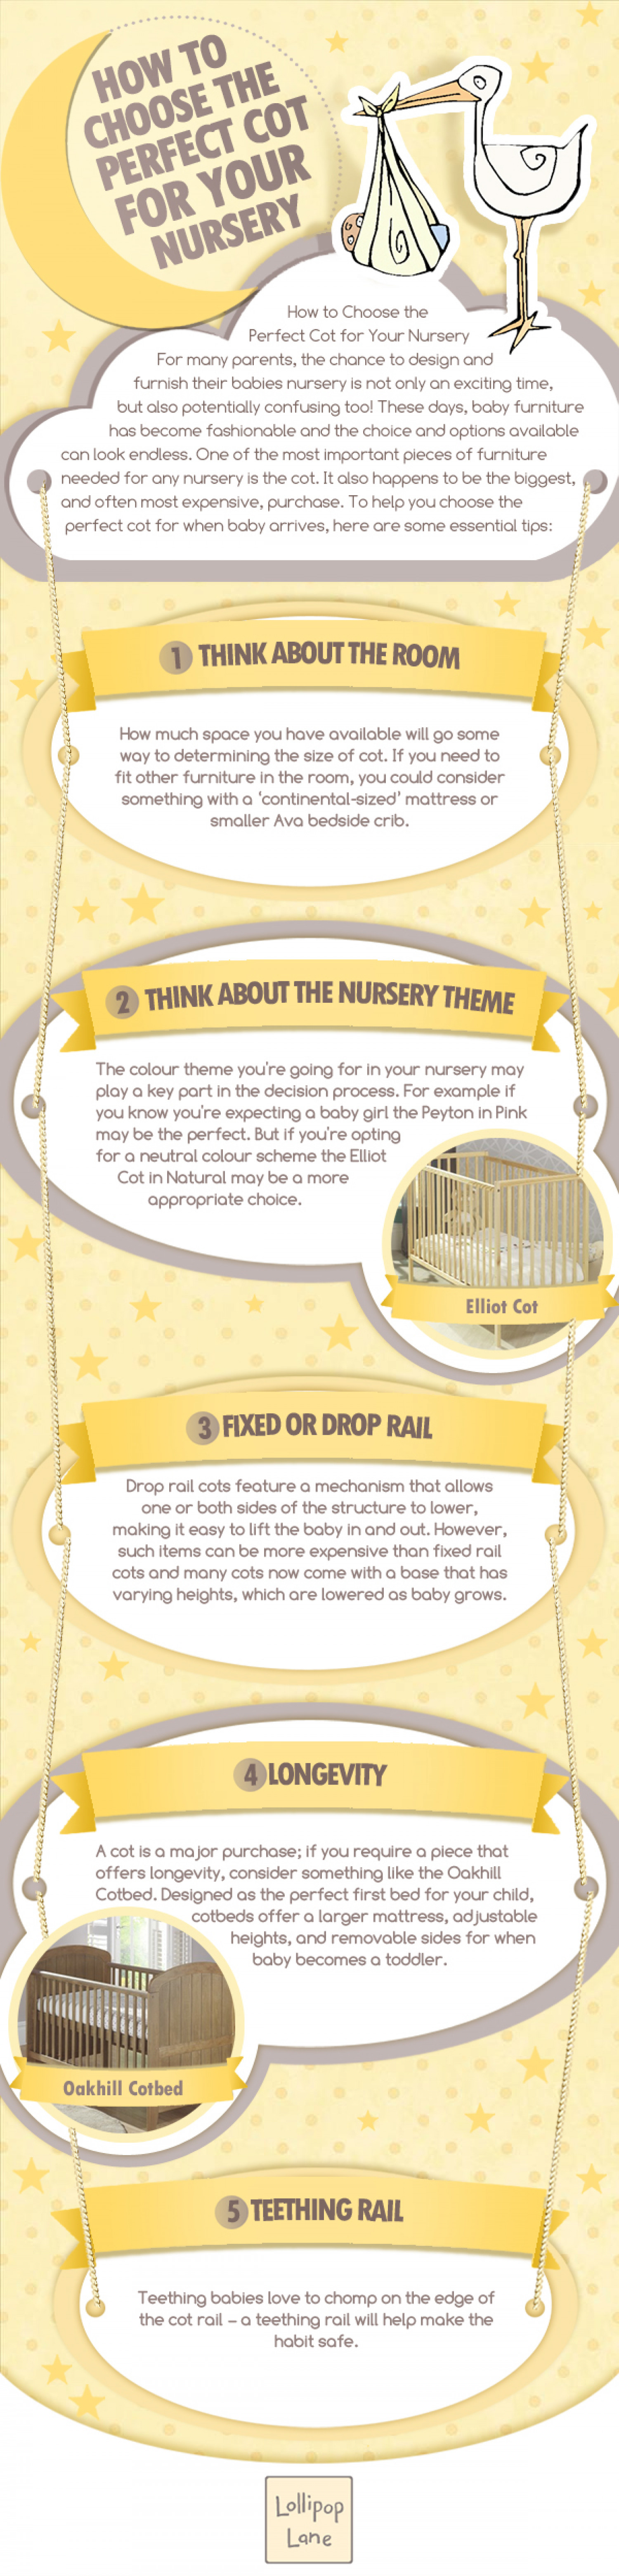 How To Choose The Perfect Cot For Your Nursery Infographic